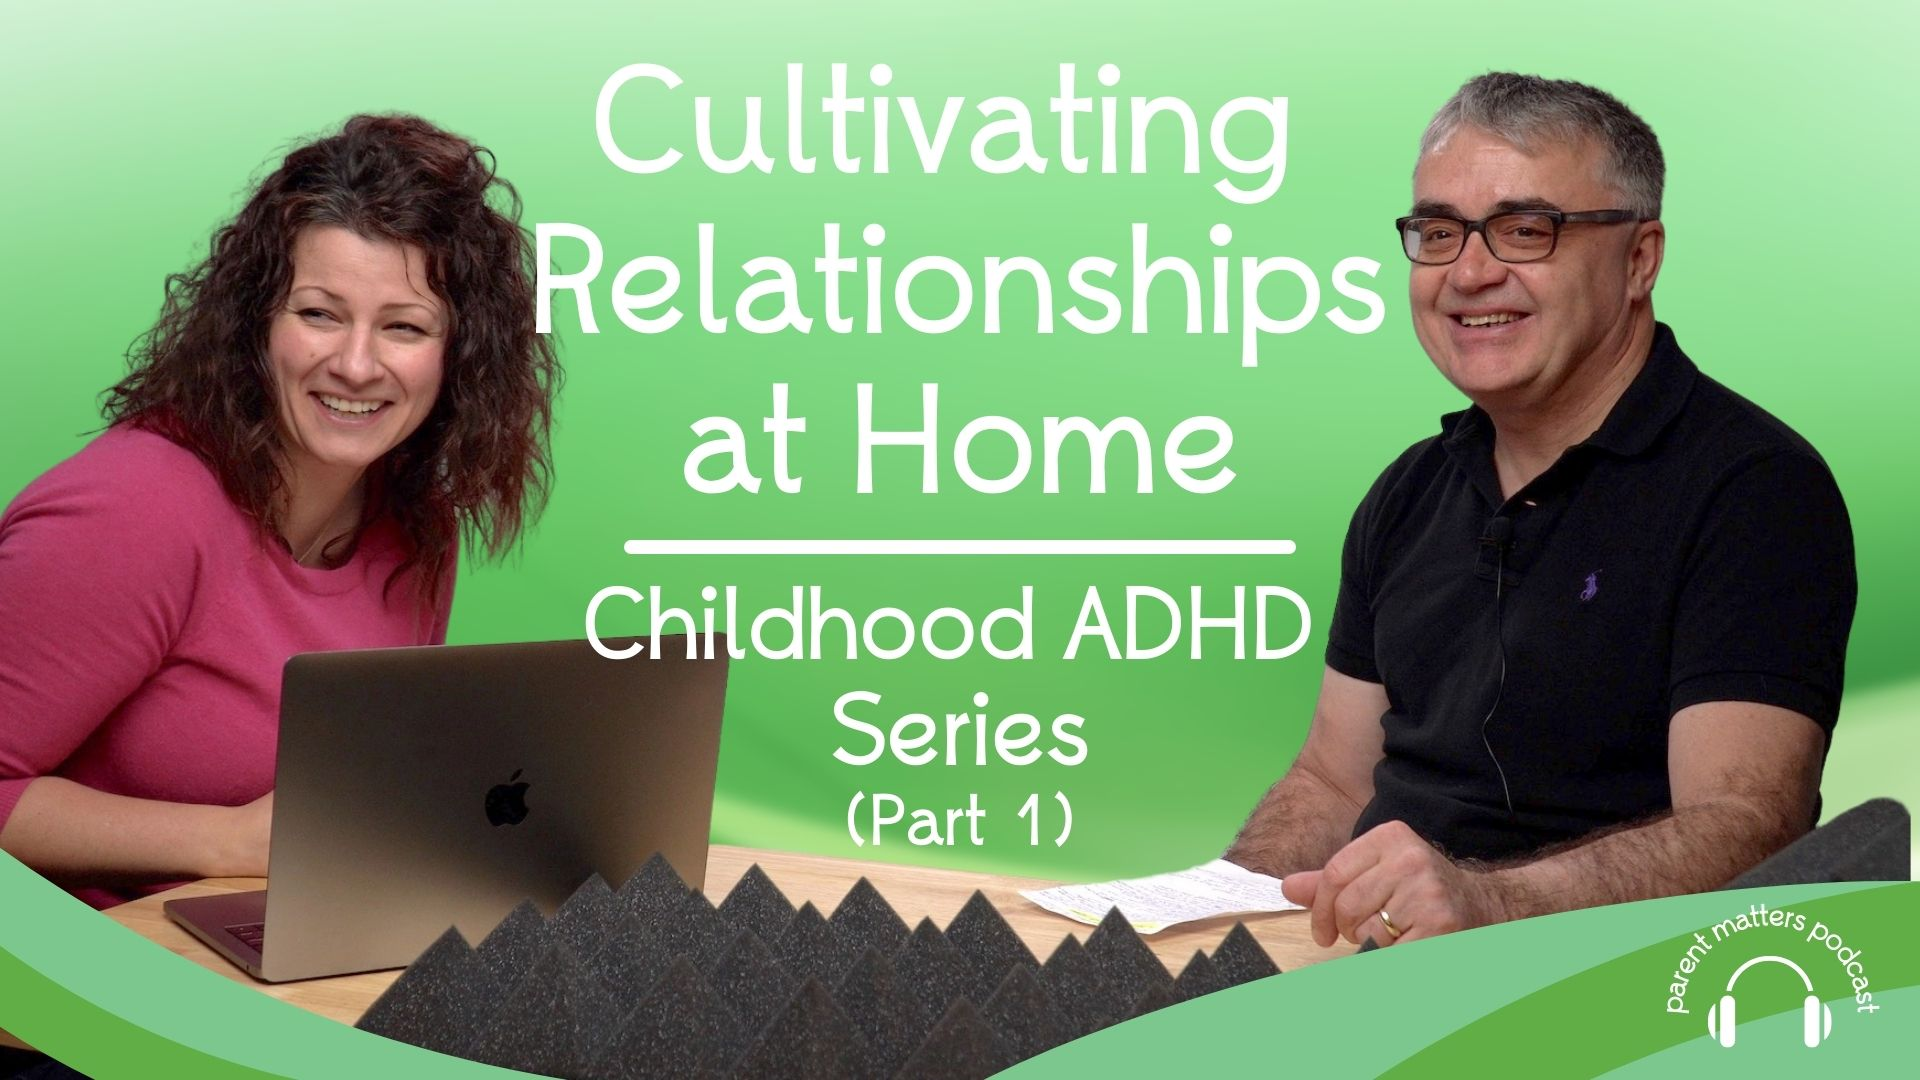 Cultivating Relationships at Home: Childhood ADHD Series - Part 1